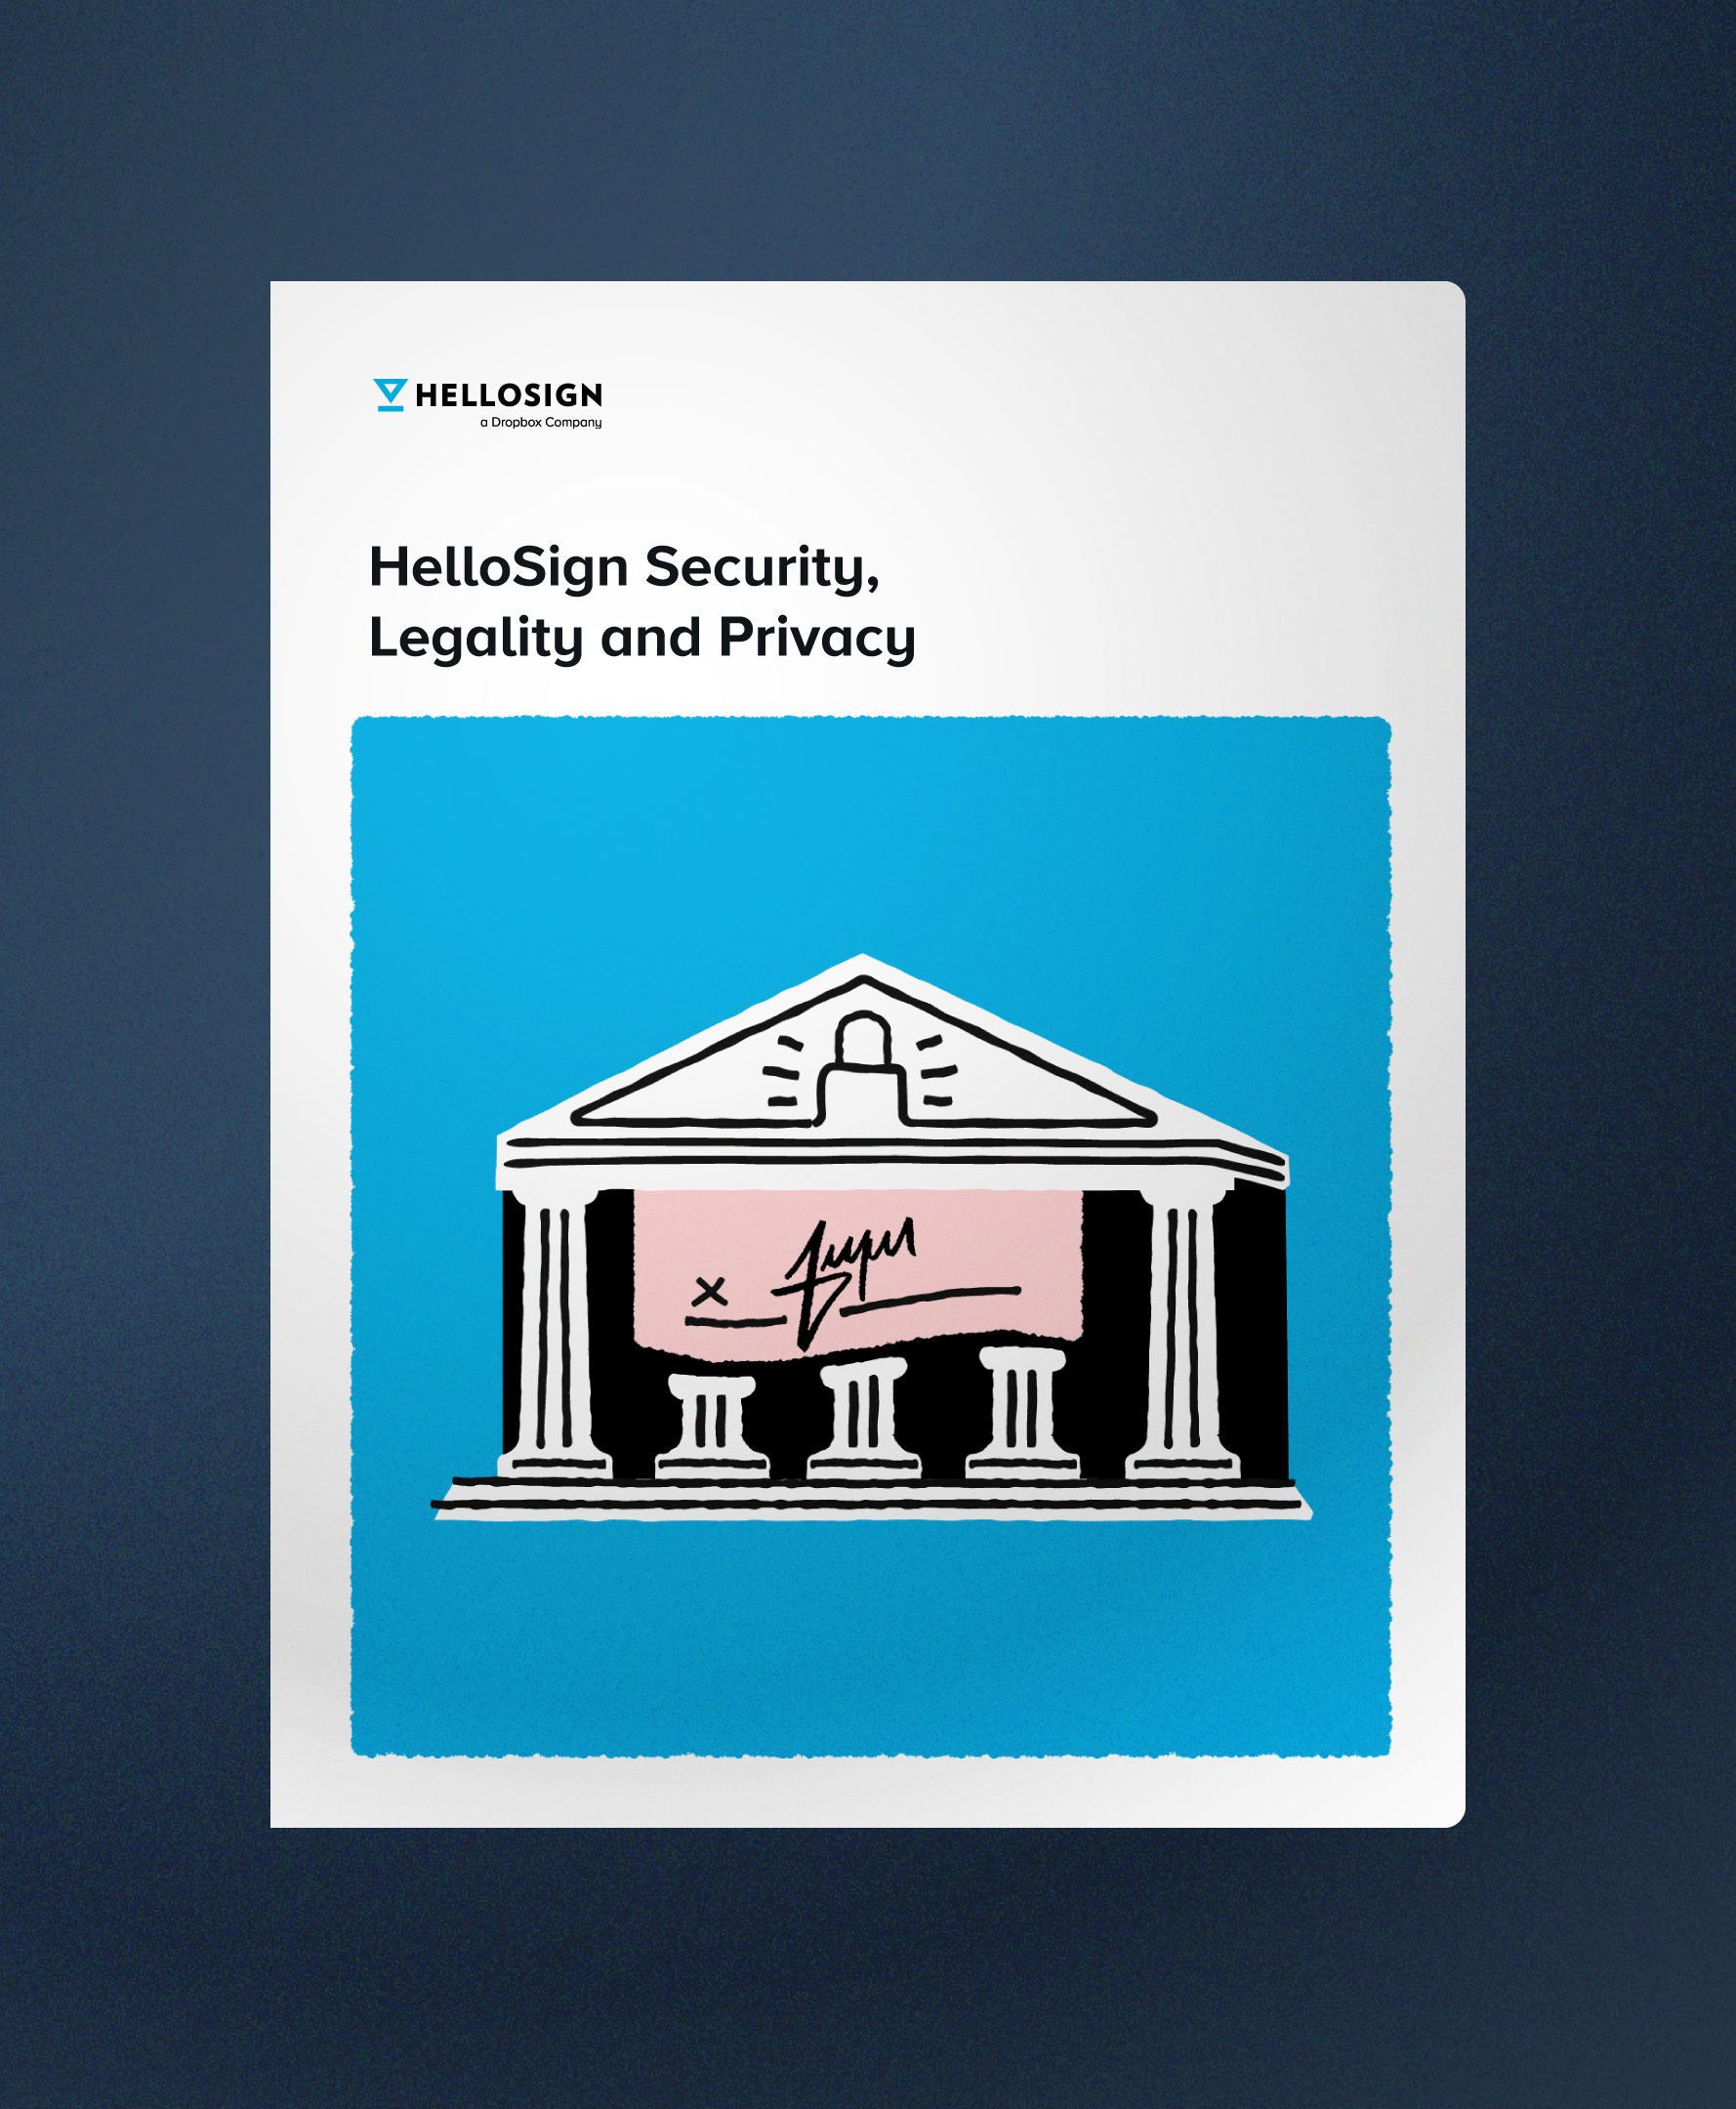 Legality guide illustration for HelloSign